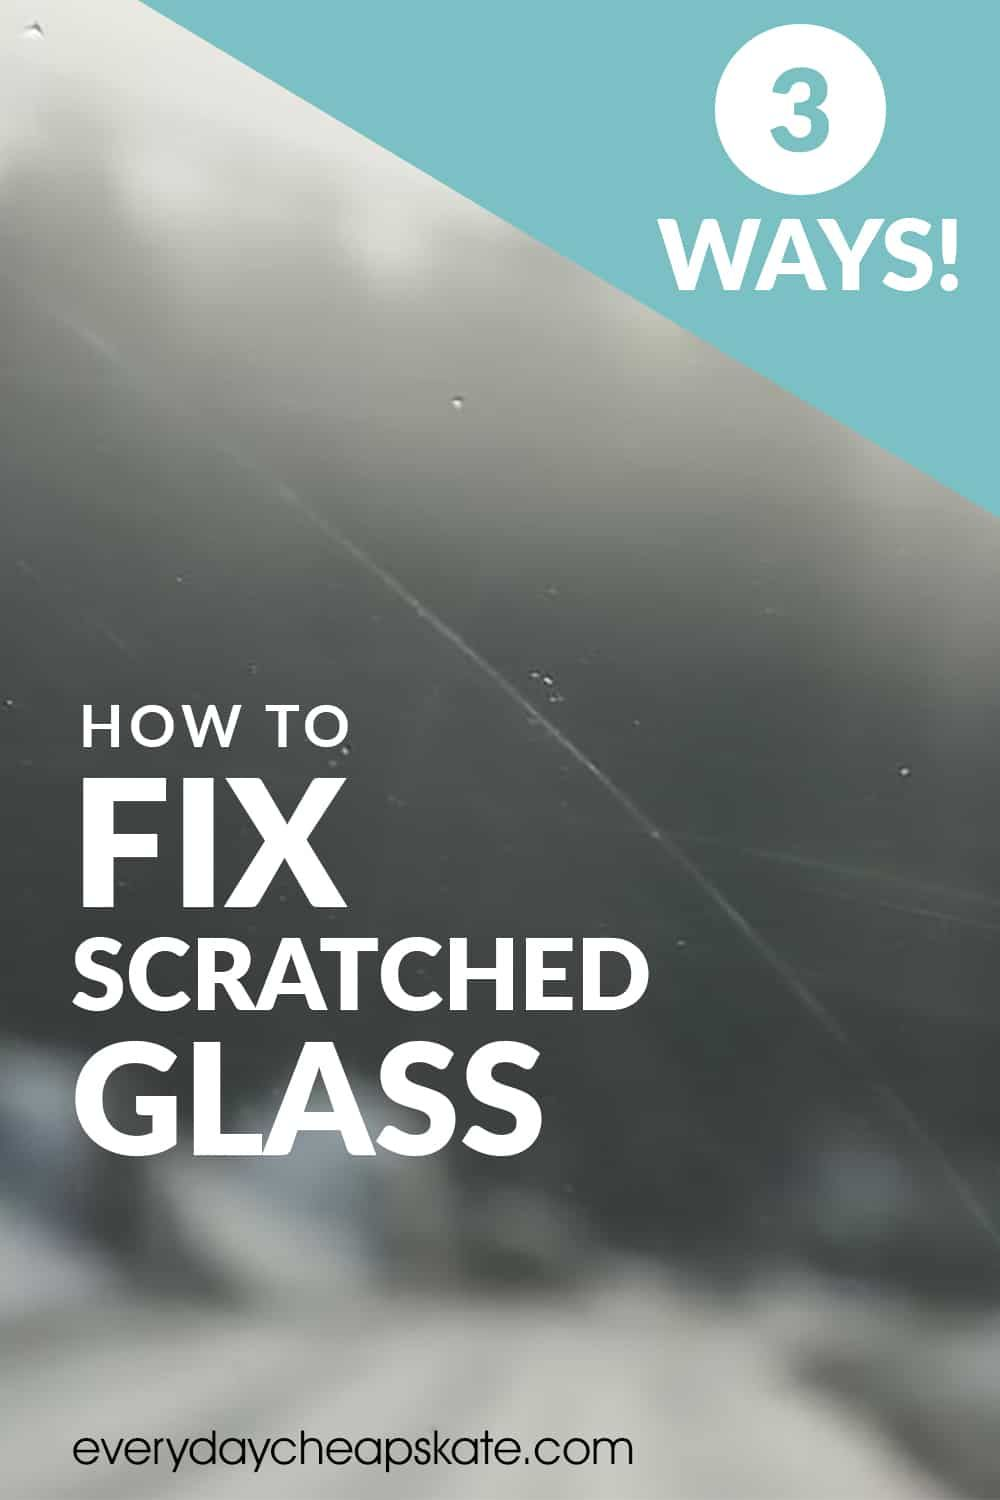 3 Ways To Fix Scratched Glass With Images Glass Glass Repair Fix It